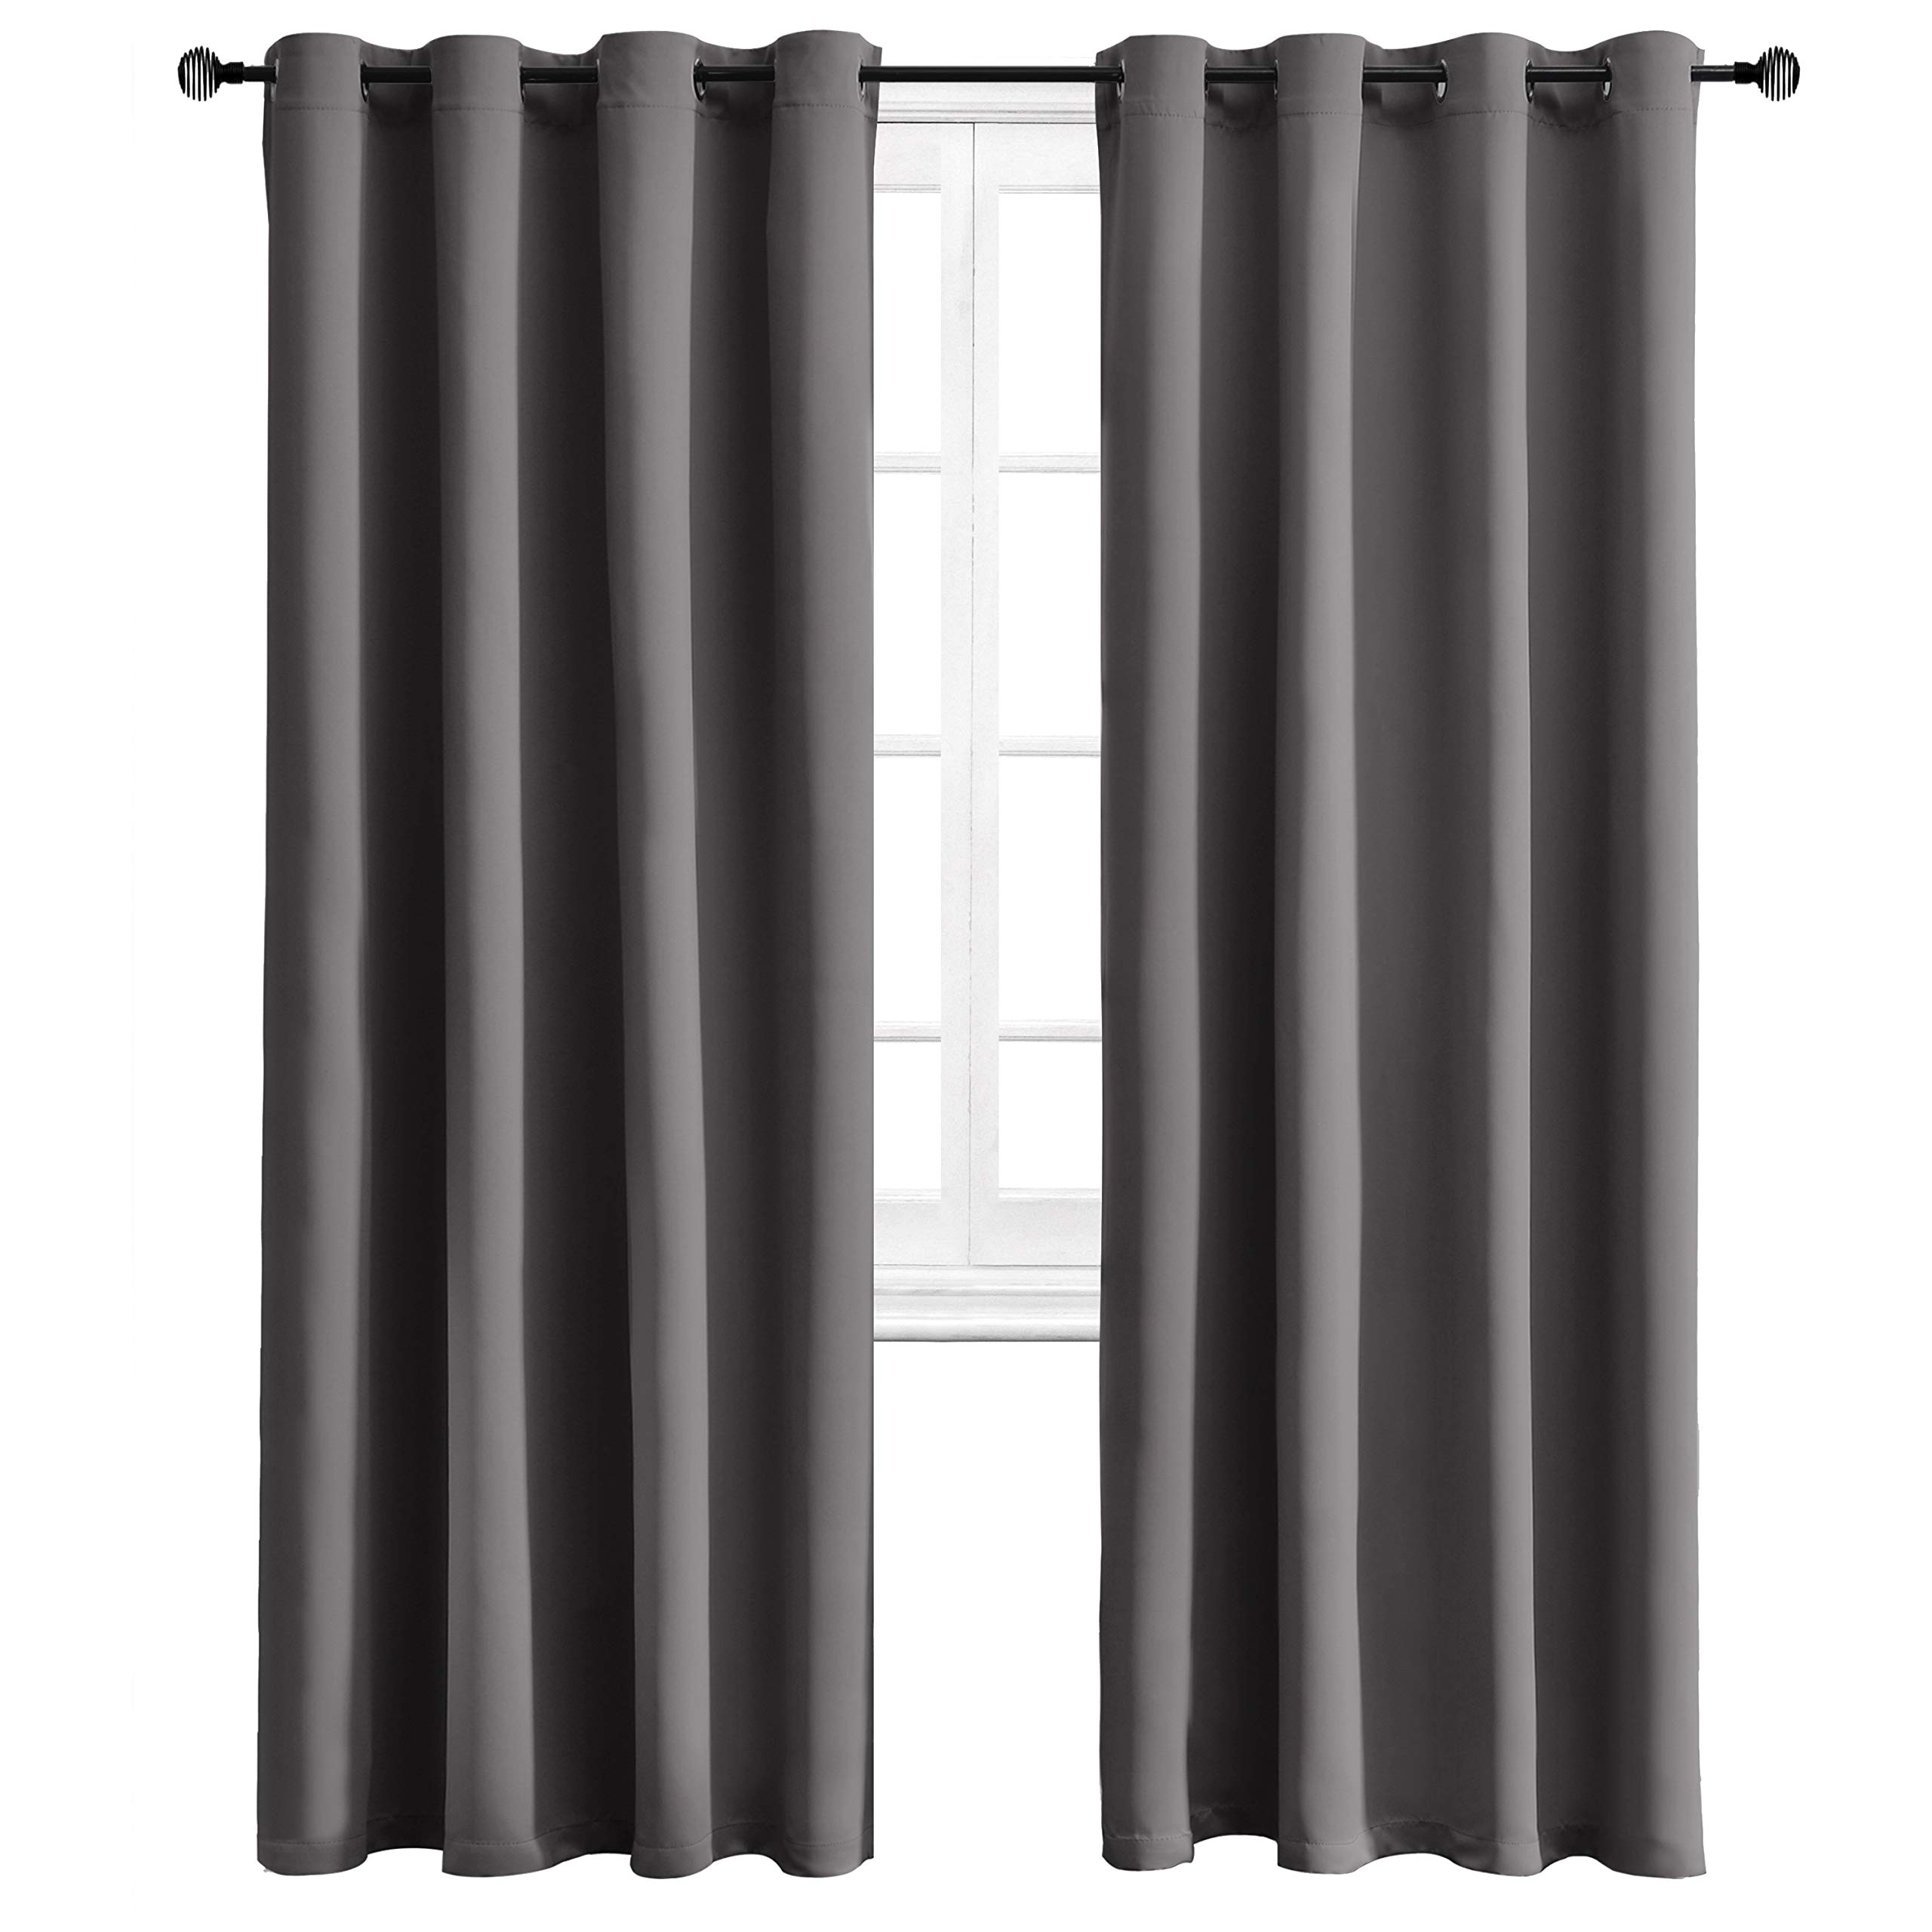 WONTEX Blackout Curtains Thermal Insulated